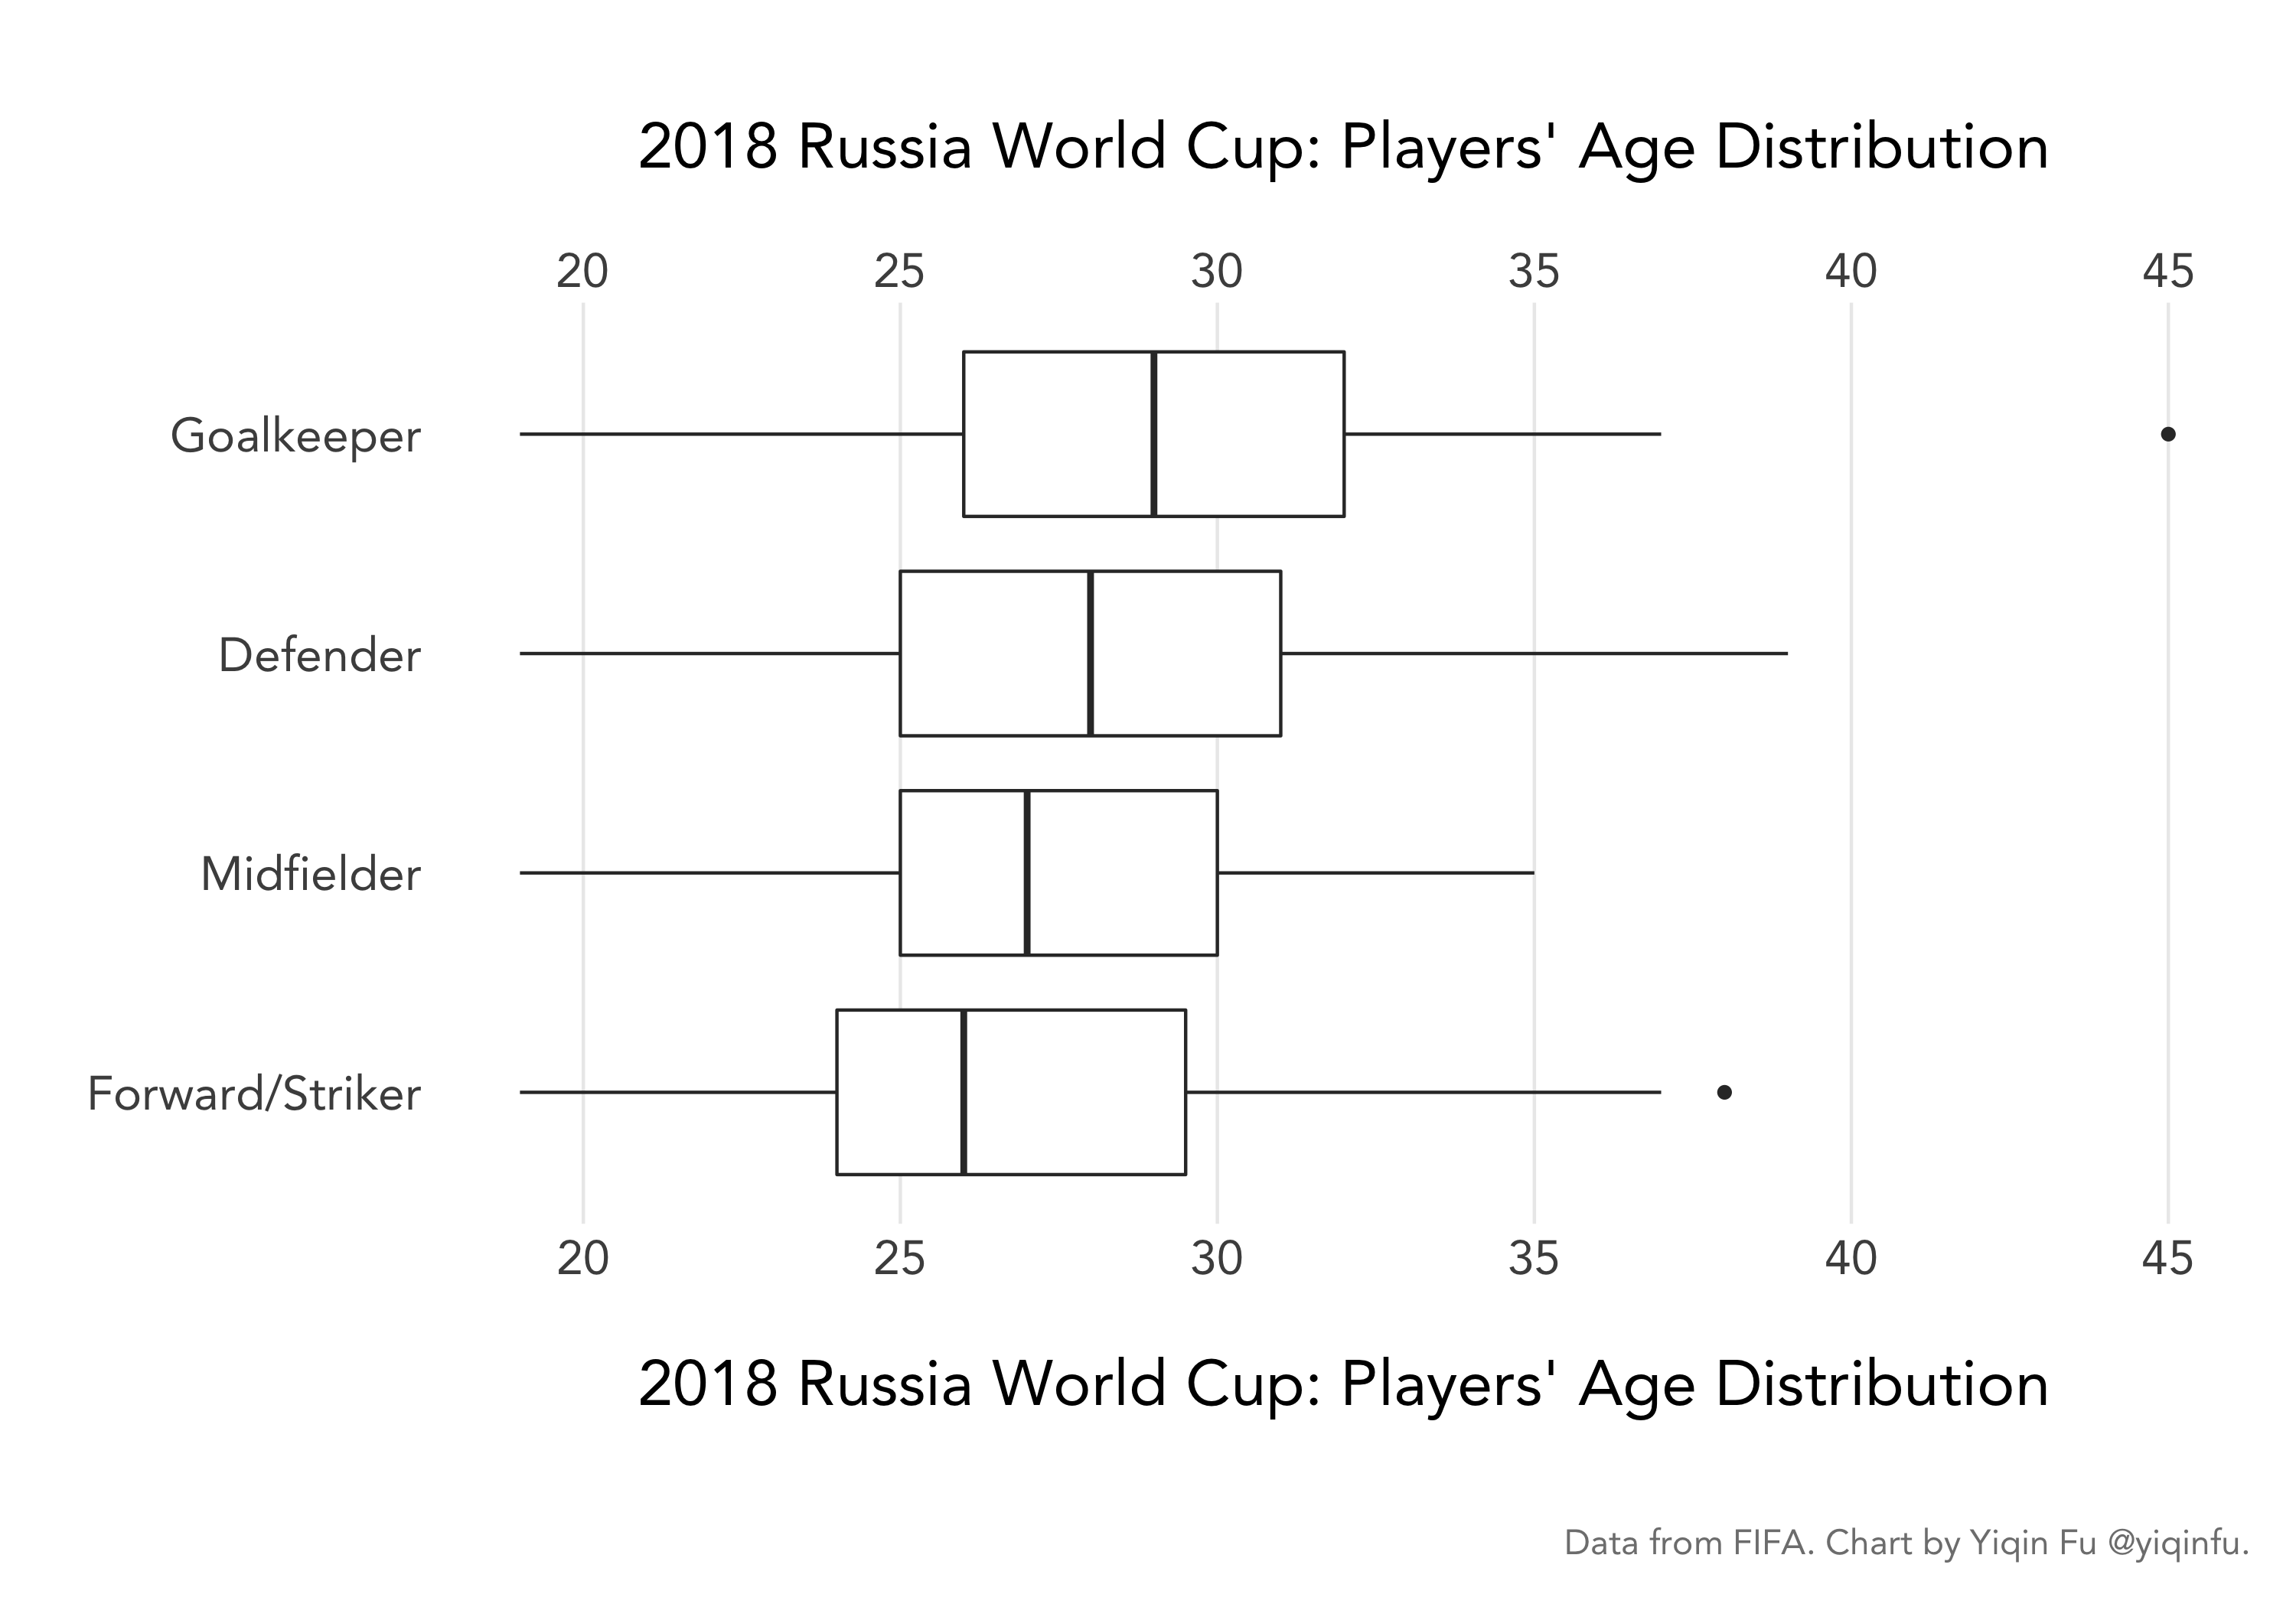 Charting the 2018 Russia World Cup Players' Height, Weight, and Age